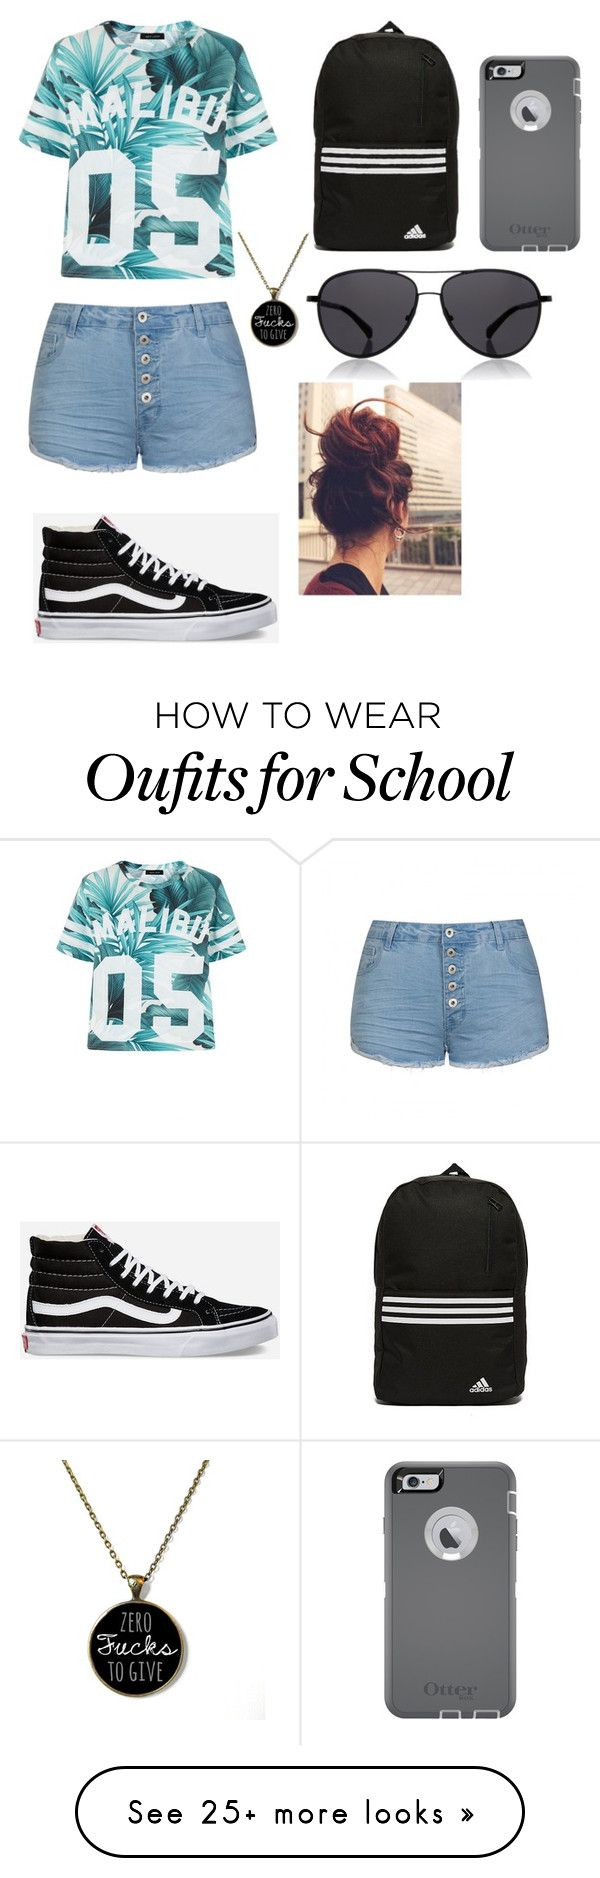 """School"" by xovbx on Polyvore featuring Ally Fashion, Vans, adidas, OtterBox and The Row"